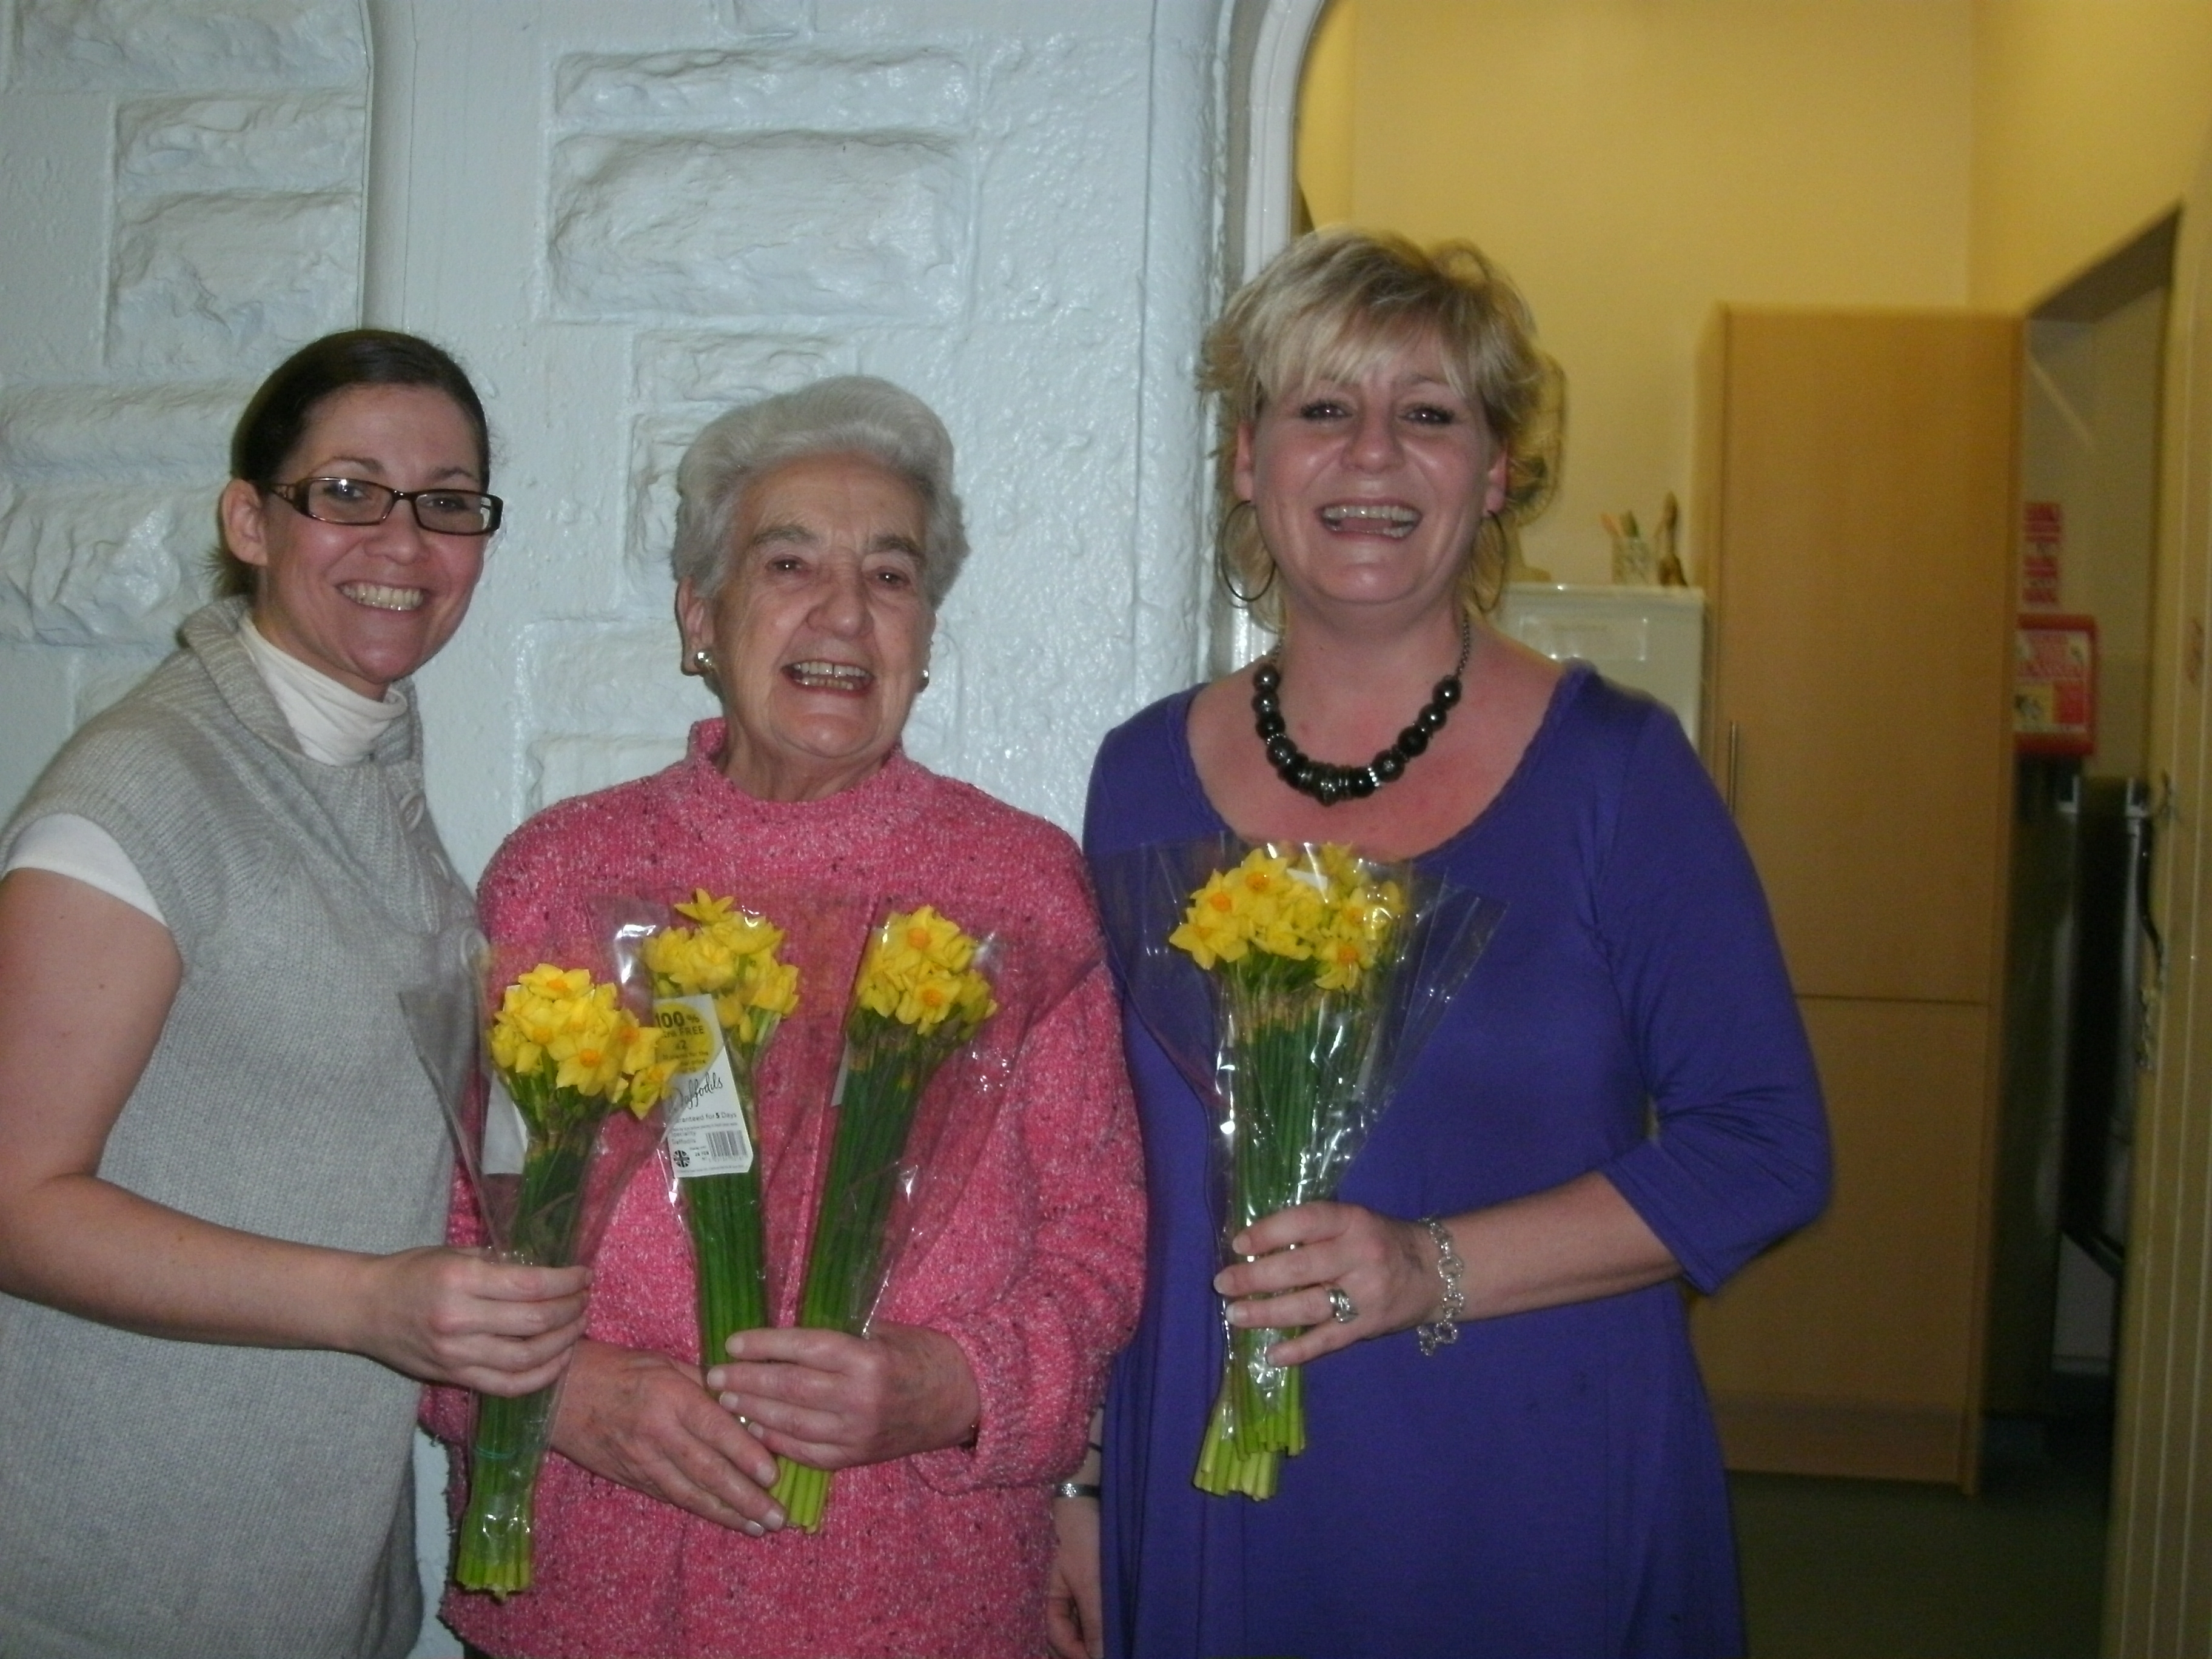 Home Instead employees Kylie Bishop, Dr Valerie Marshall, and Linda Bowhill during the Golden Daffodils event